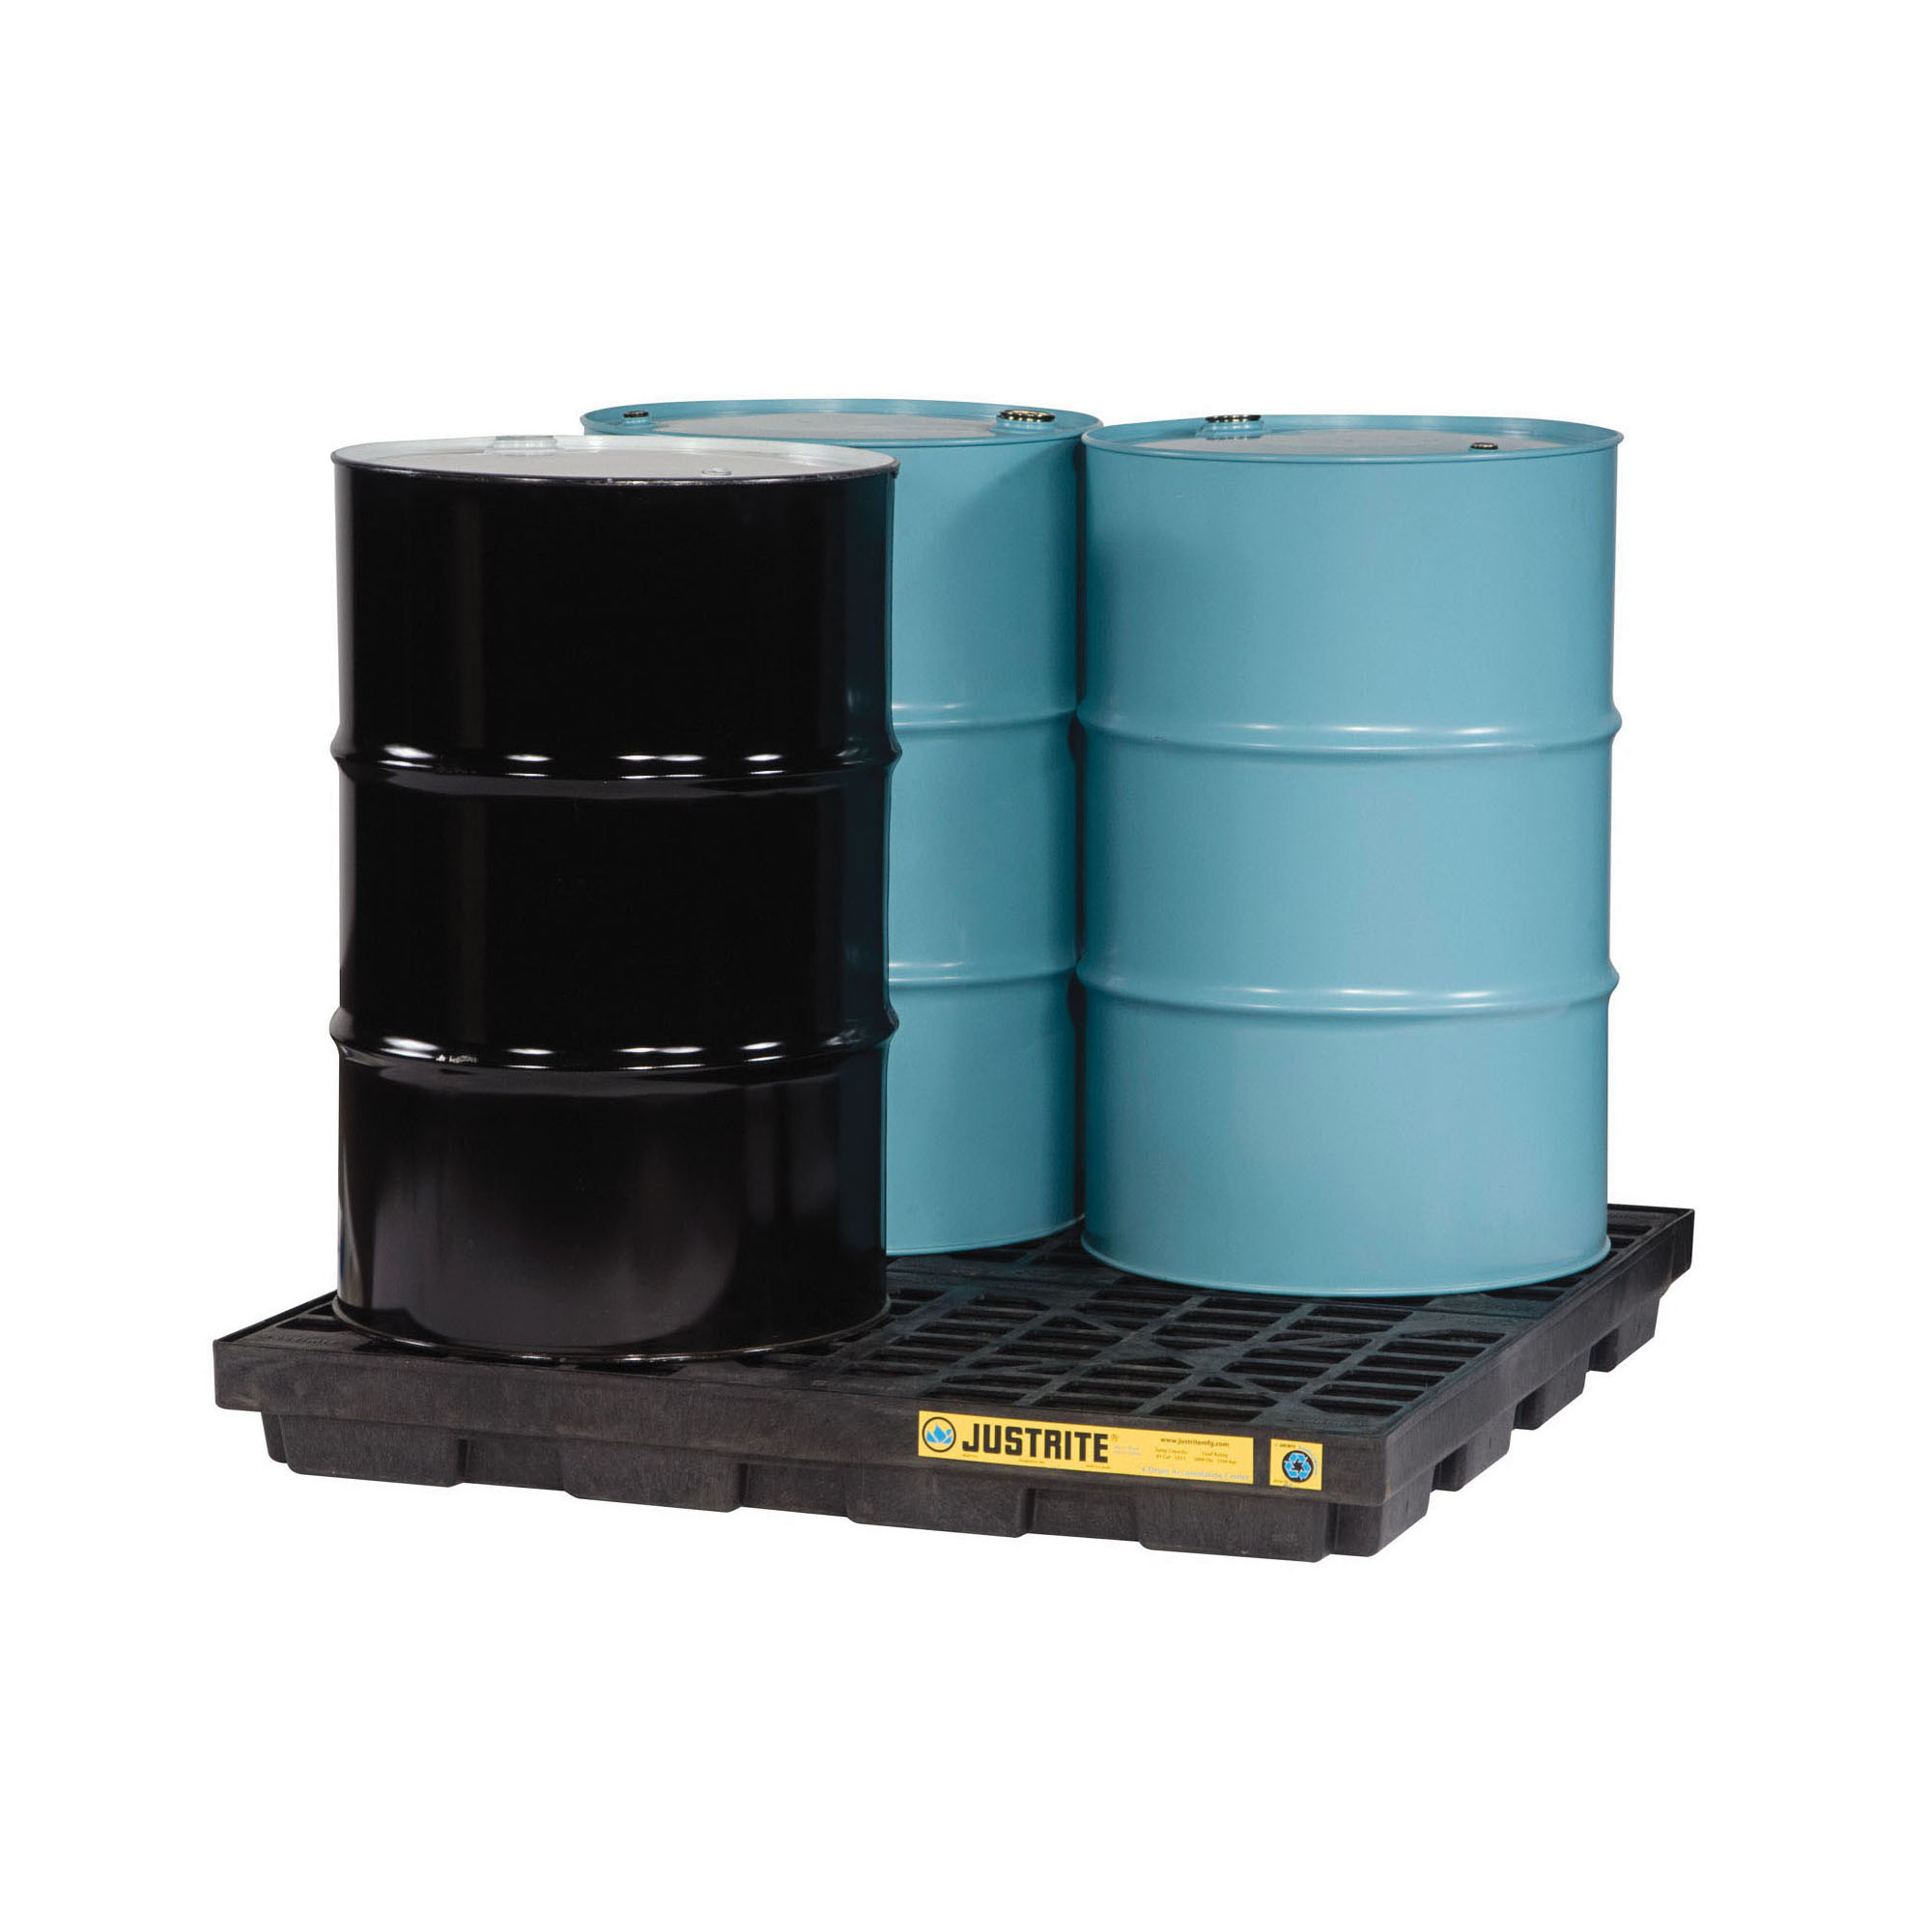 Justrite® 28657 EcoPolyBlend™ Accumulation Center, 4 Drums, 49 gal Spill, 5000 lb Load, 100% Recycled Polyethylene